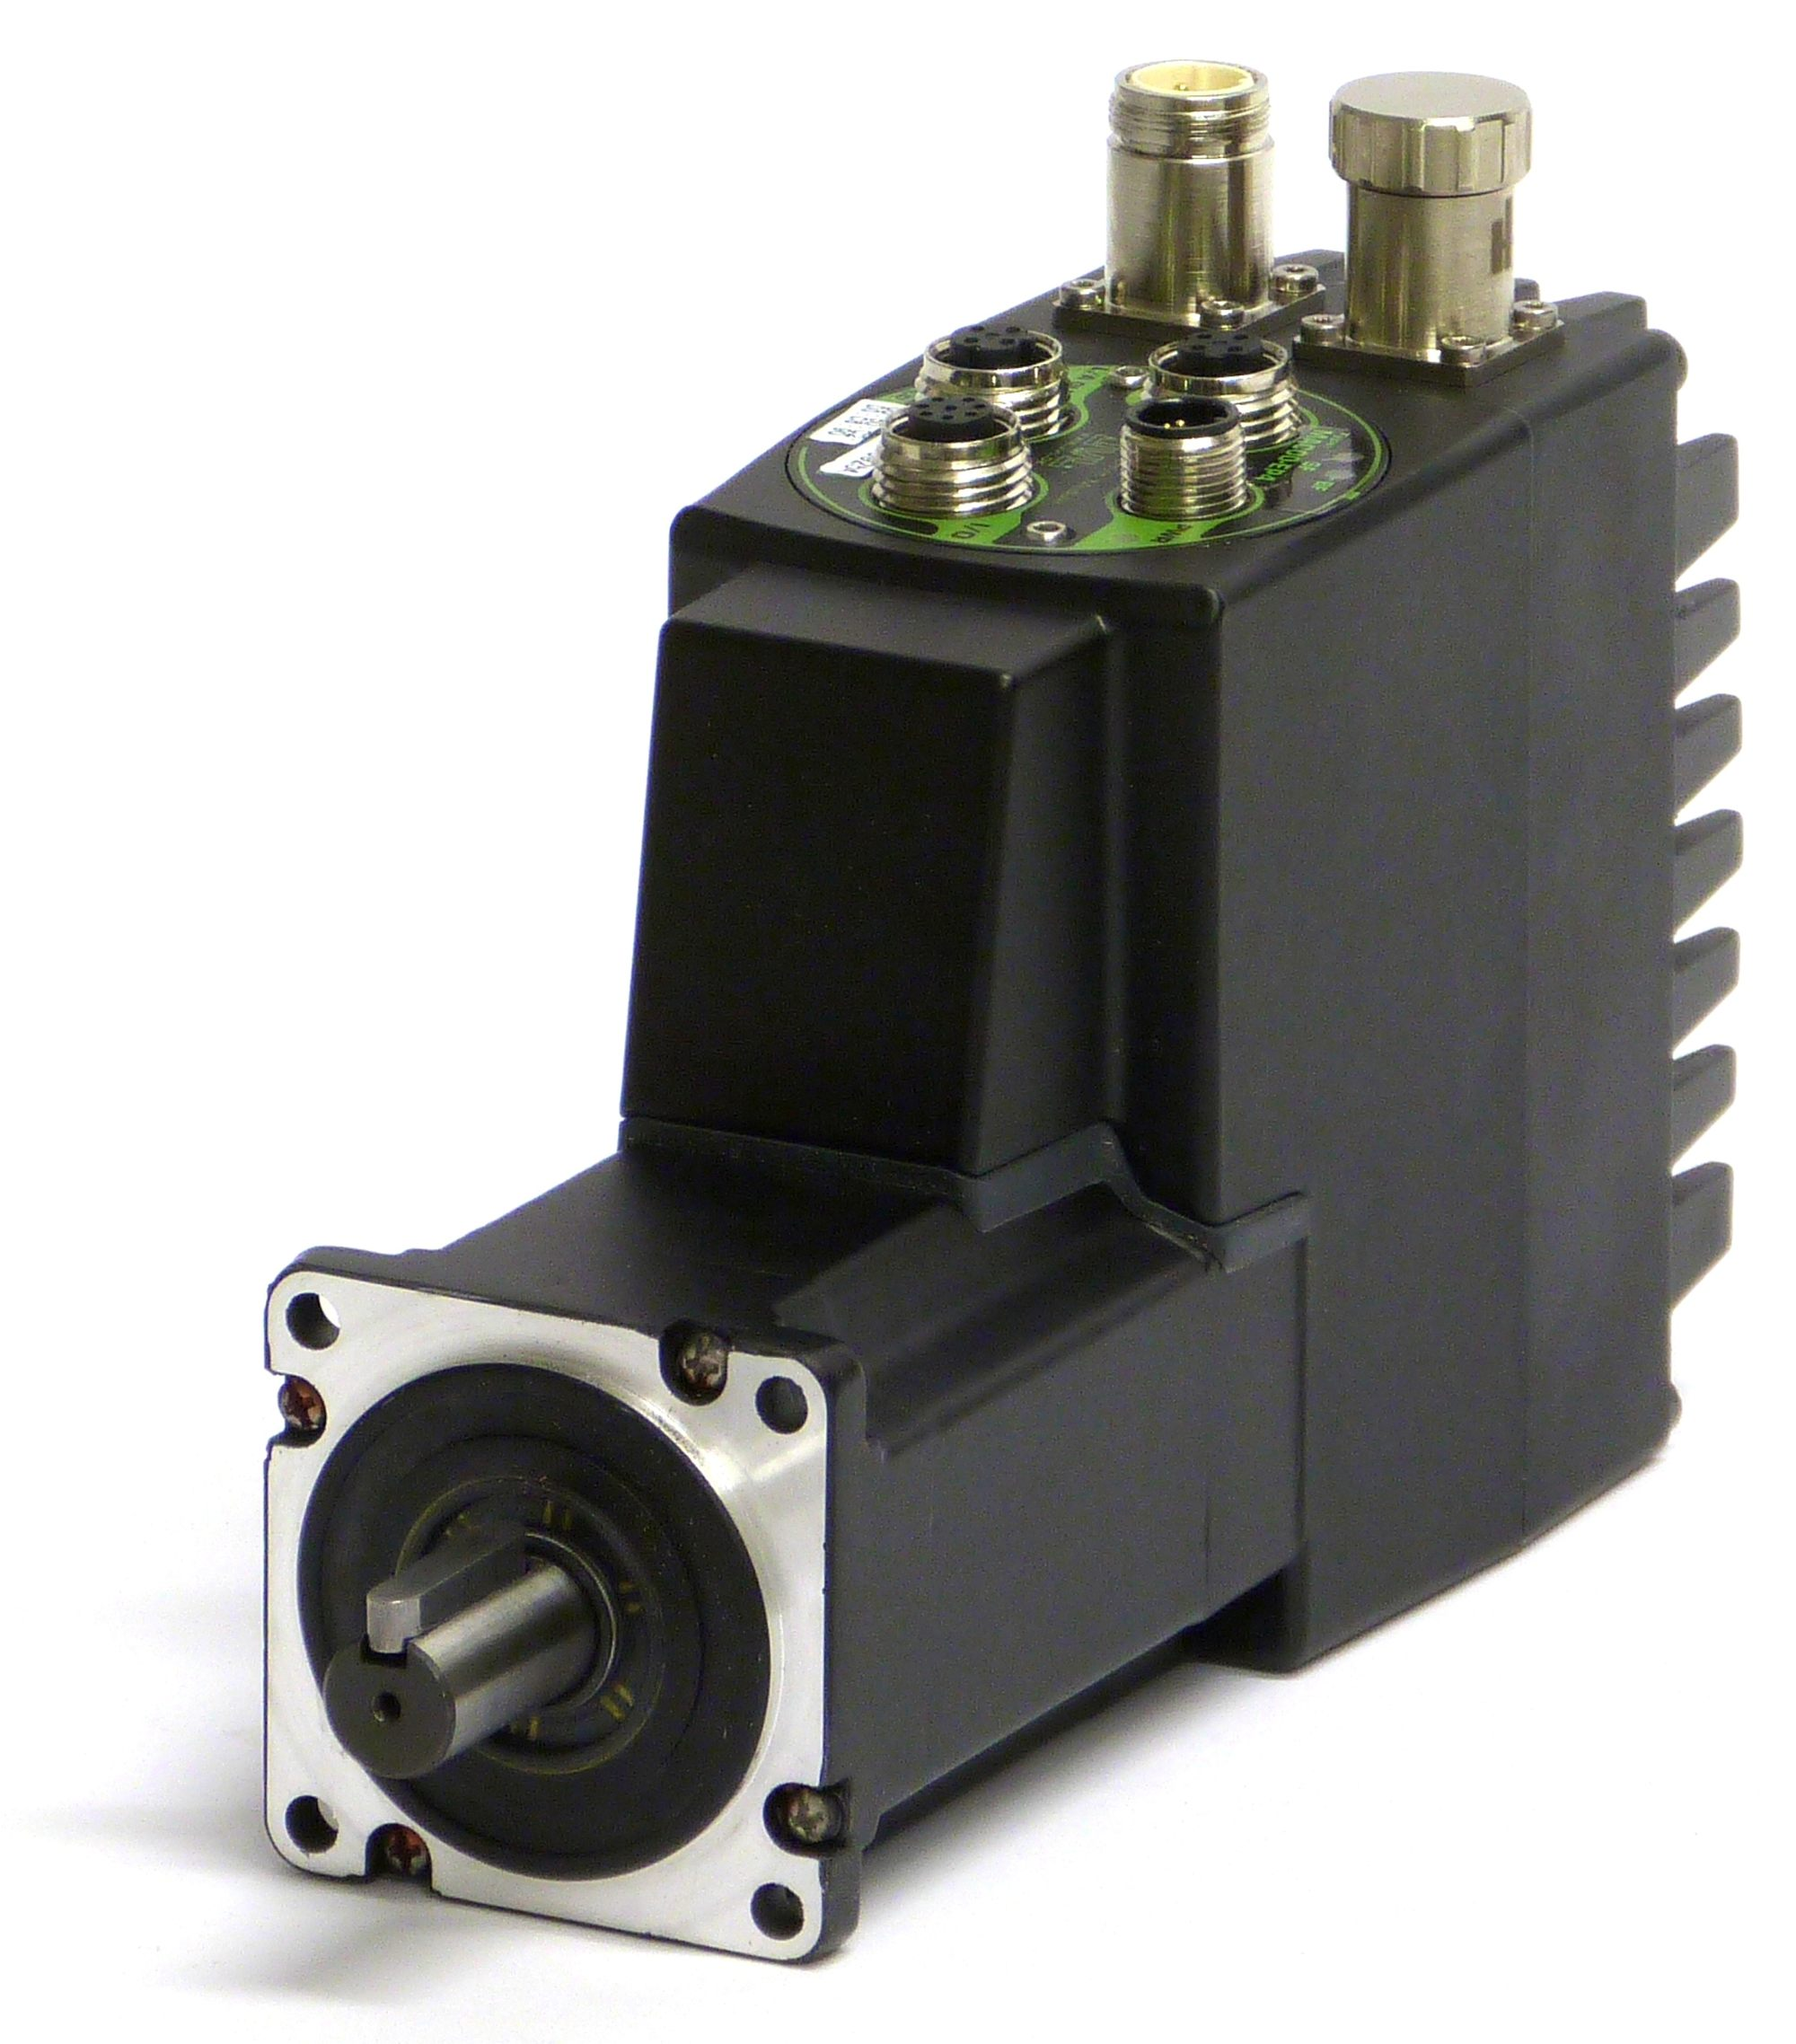 Get low installation cost and faster installation with integrated servo motors from JVL